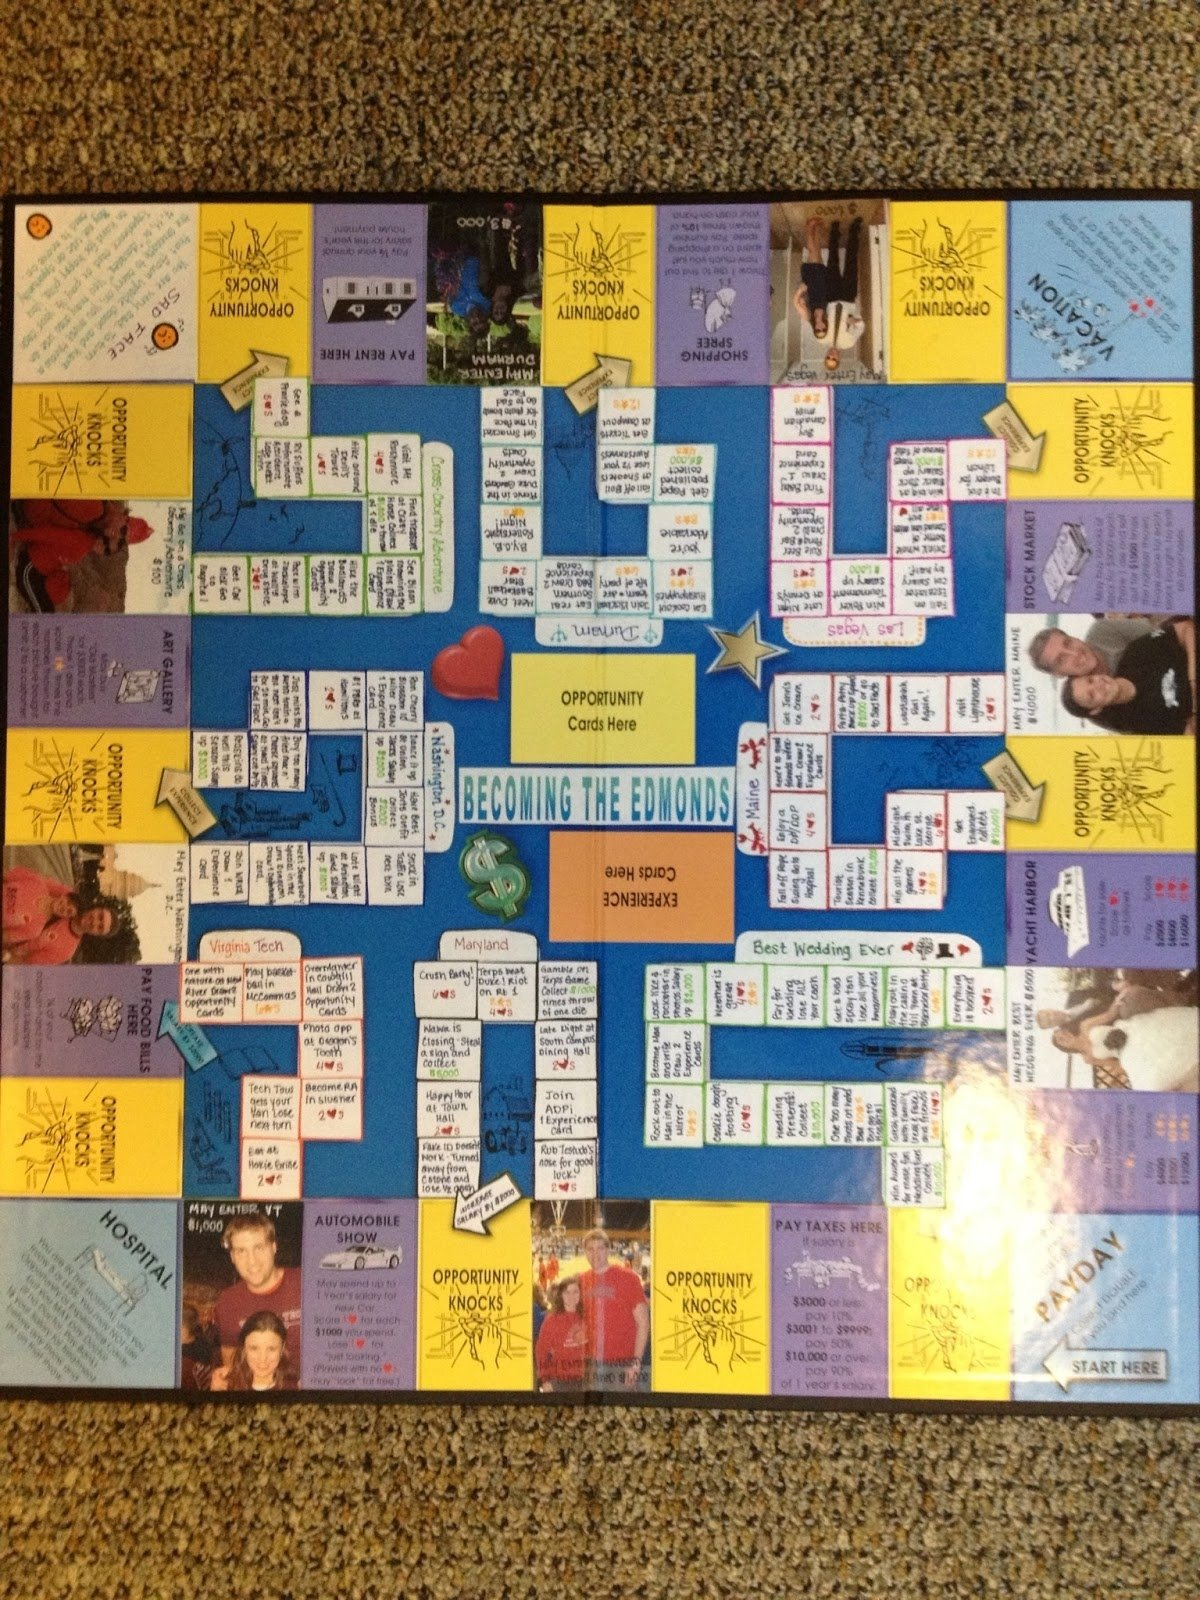 10 Famous Board Game Ideas For School Projects i like to do crafty things make your own board game 2020